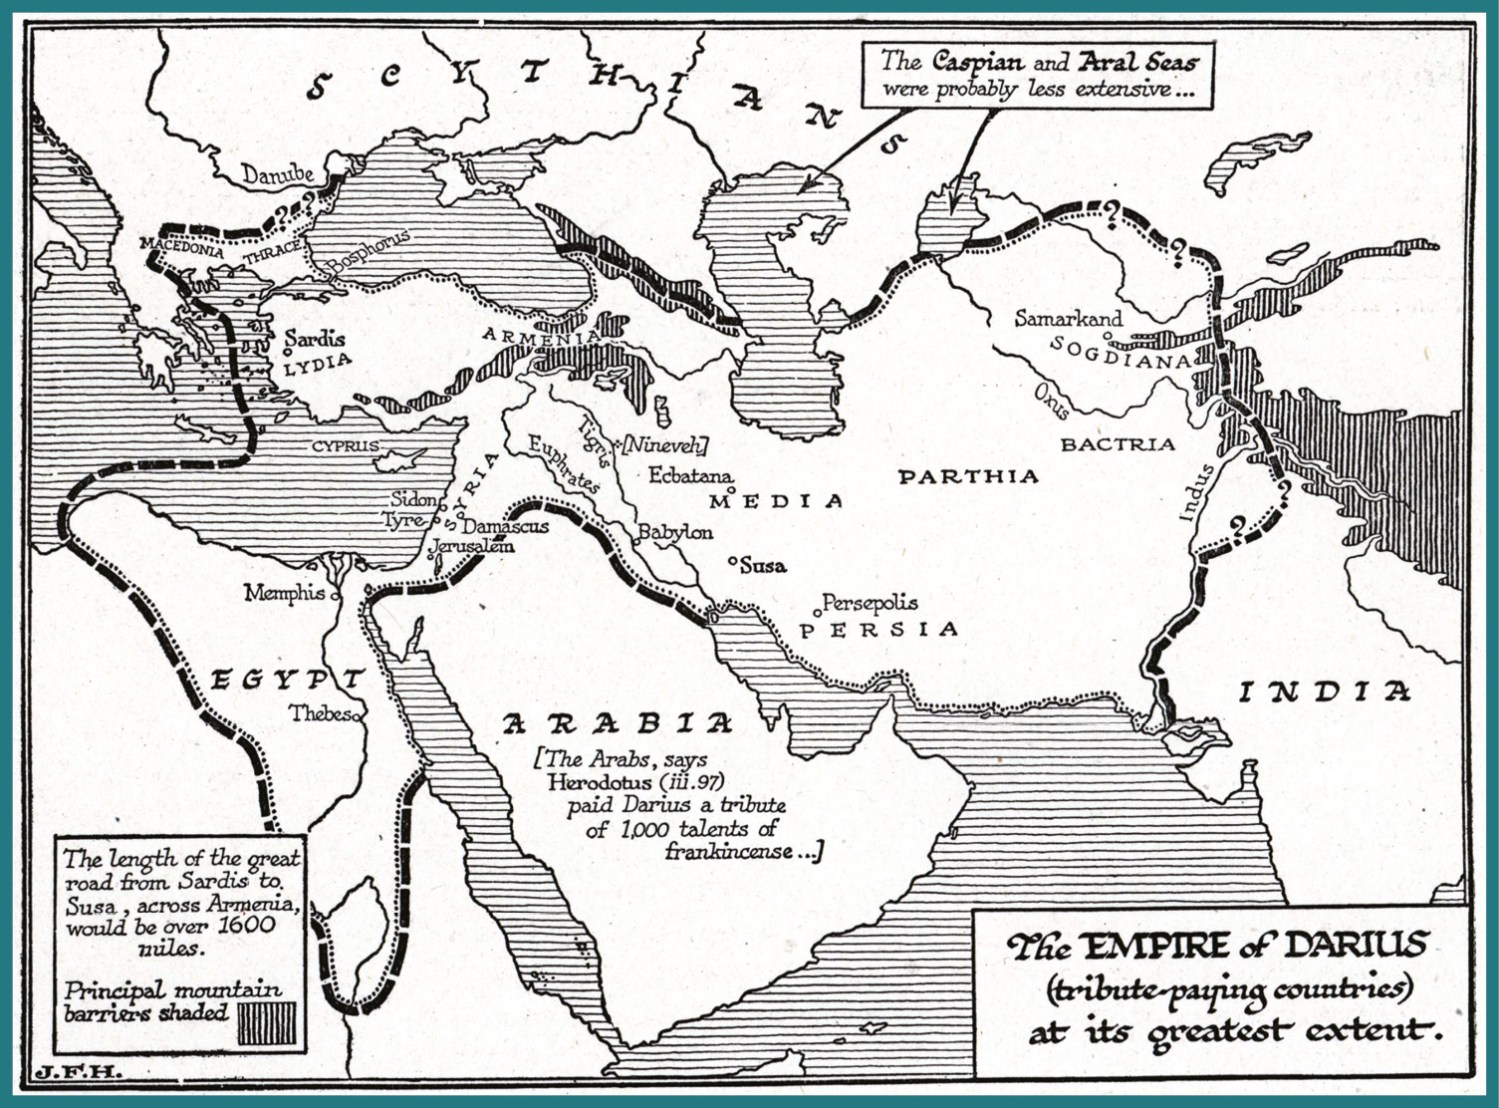 ABOVE The Persian Empire at its peak.